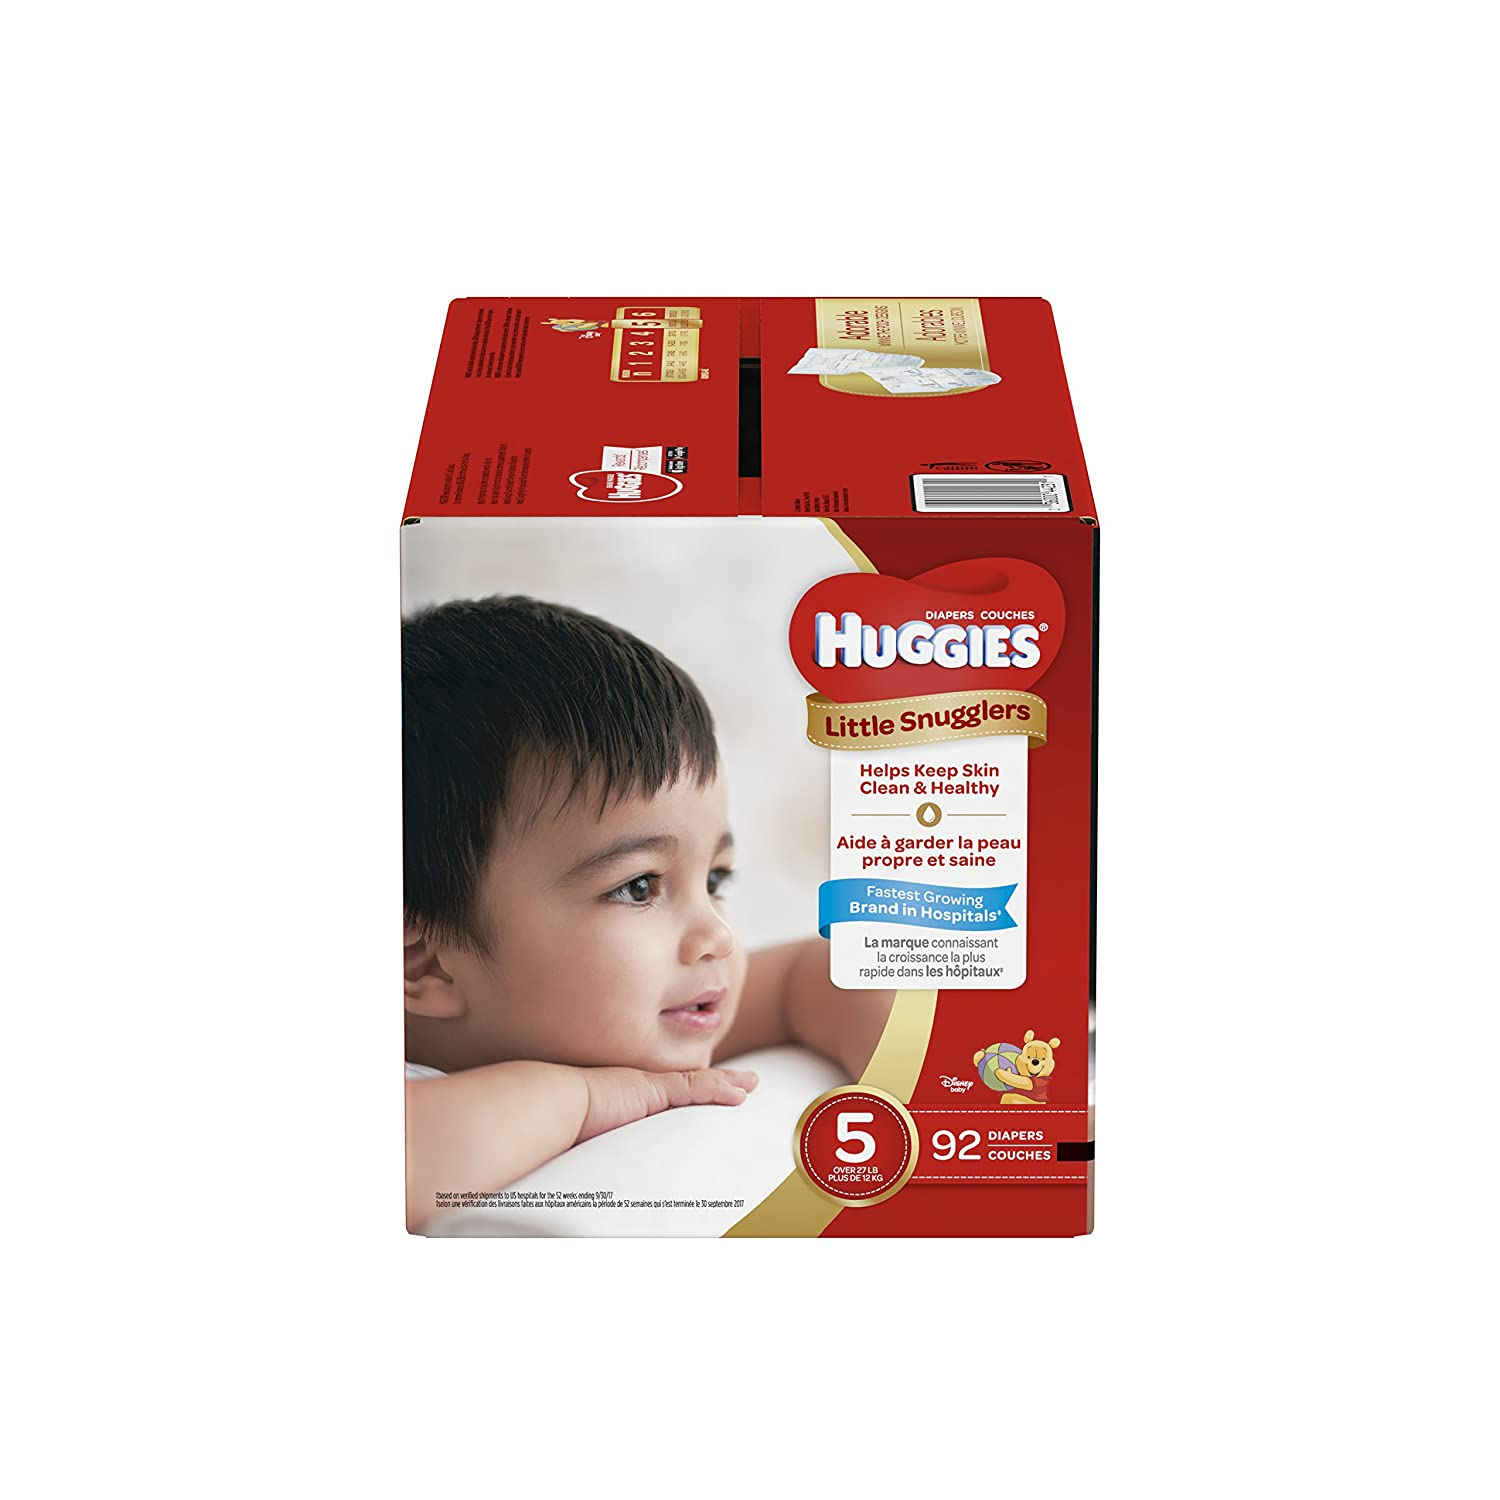 HUGGIES LITTLE SNUGGLERS, Baby Diapers, Size 5, 124ct Kimberly Clark No  Model